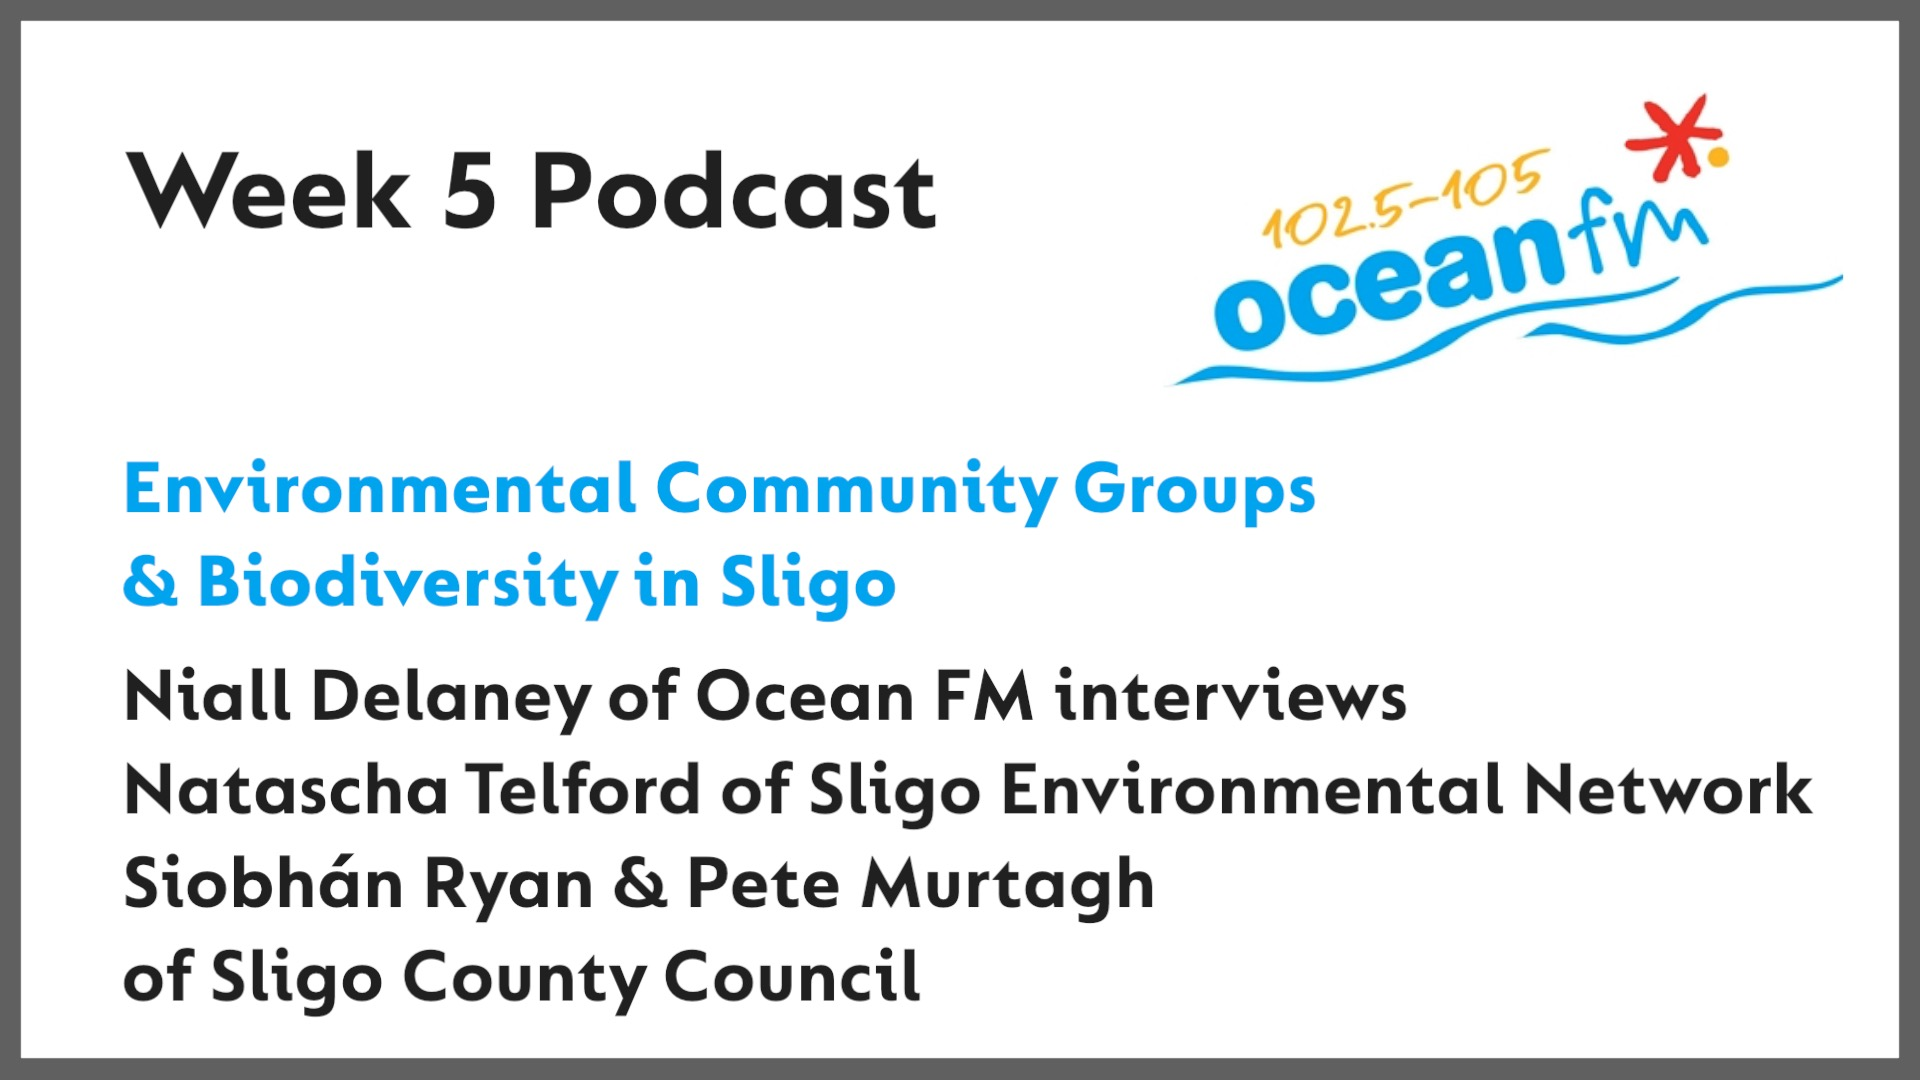 Biodiversity and the Environment - Ocean FM interview